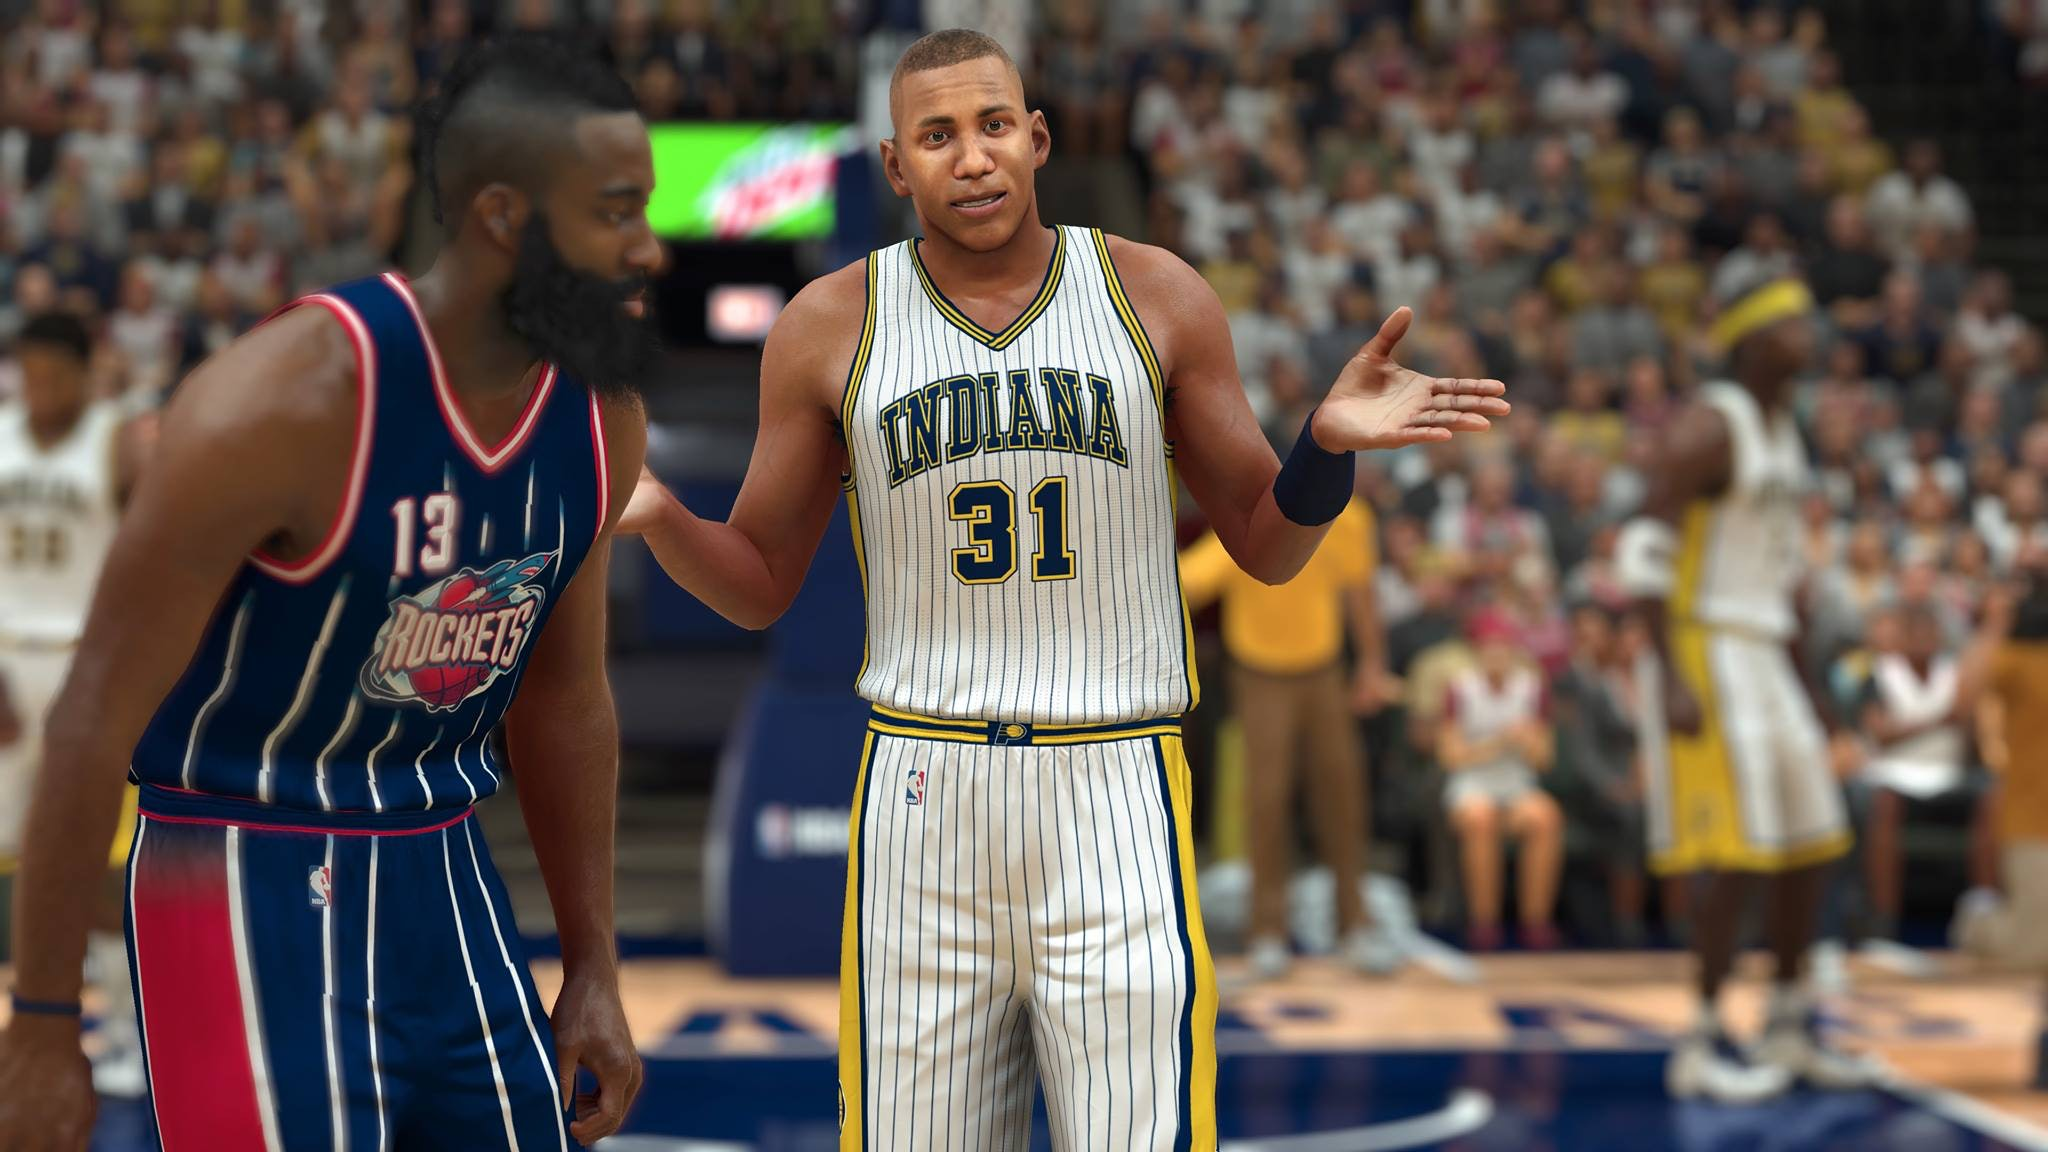 Nba 2k17 How To Download The Ultimate Legends Roster 3 For Ps4